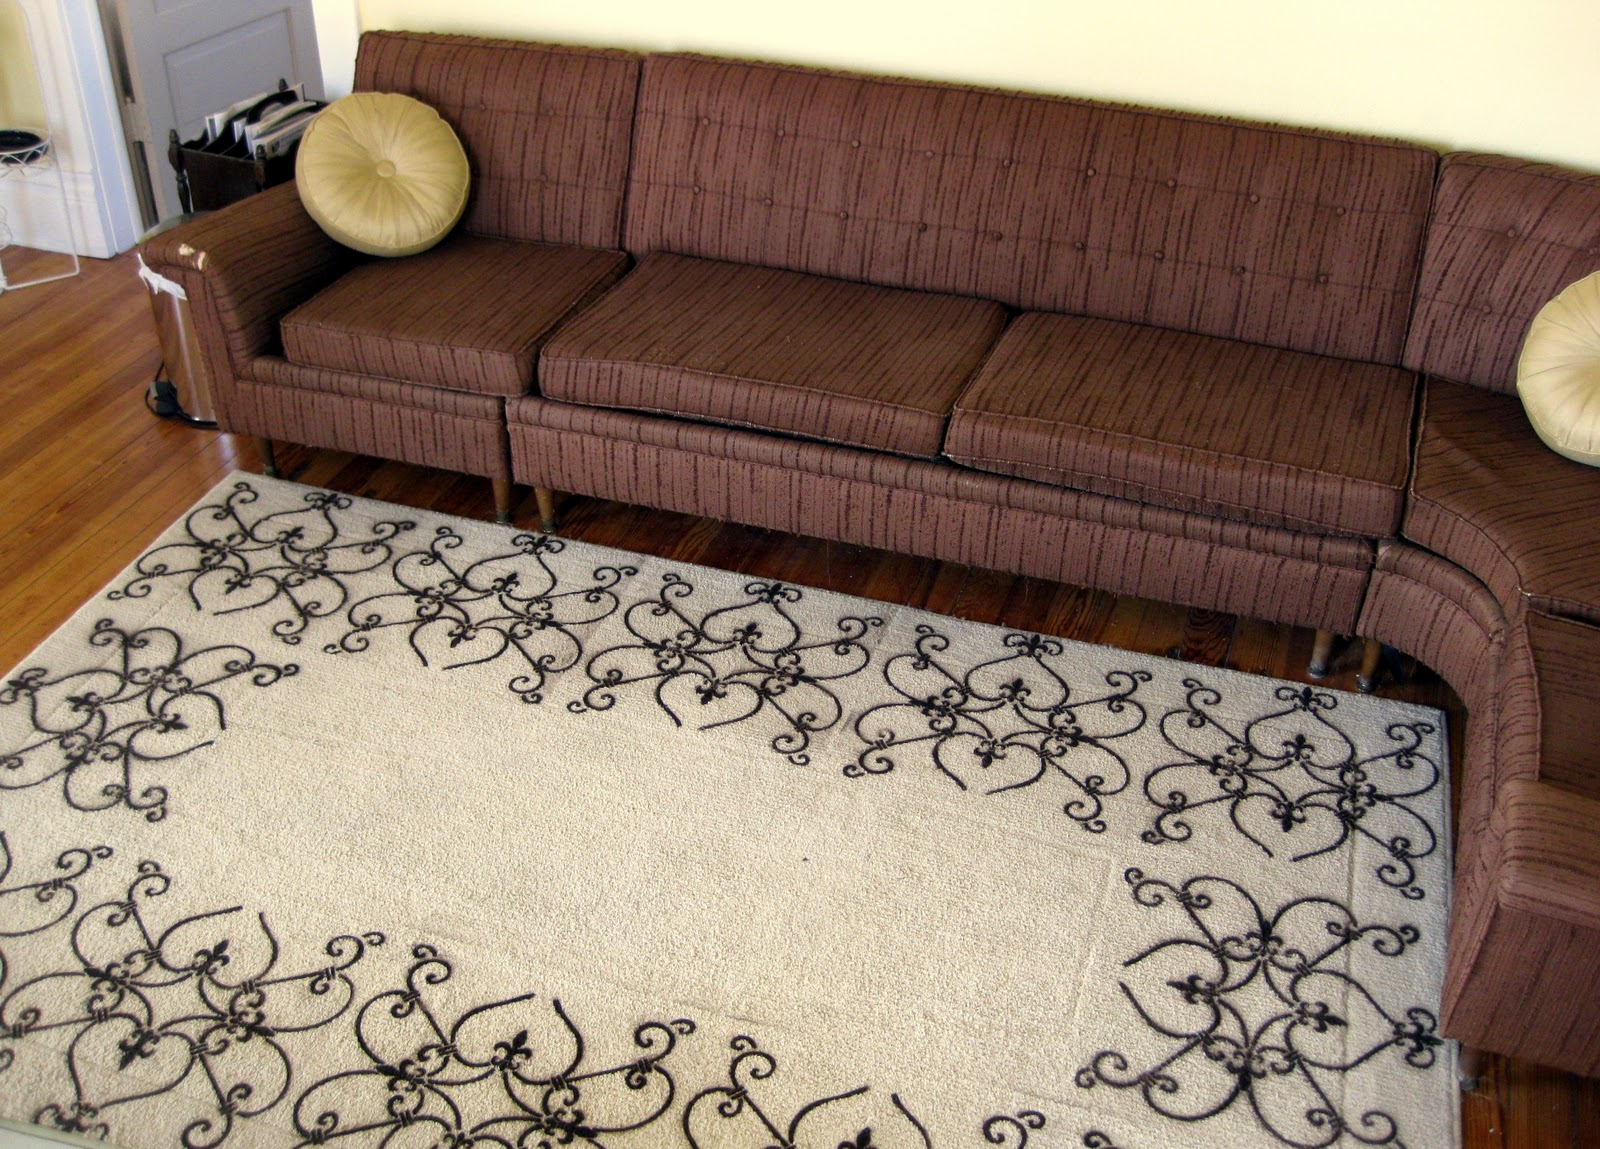 DIY Stenciled Rug Tutorial